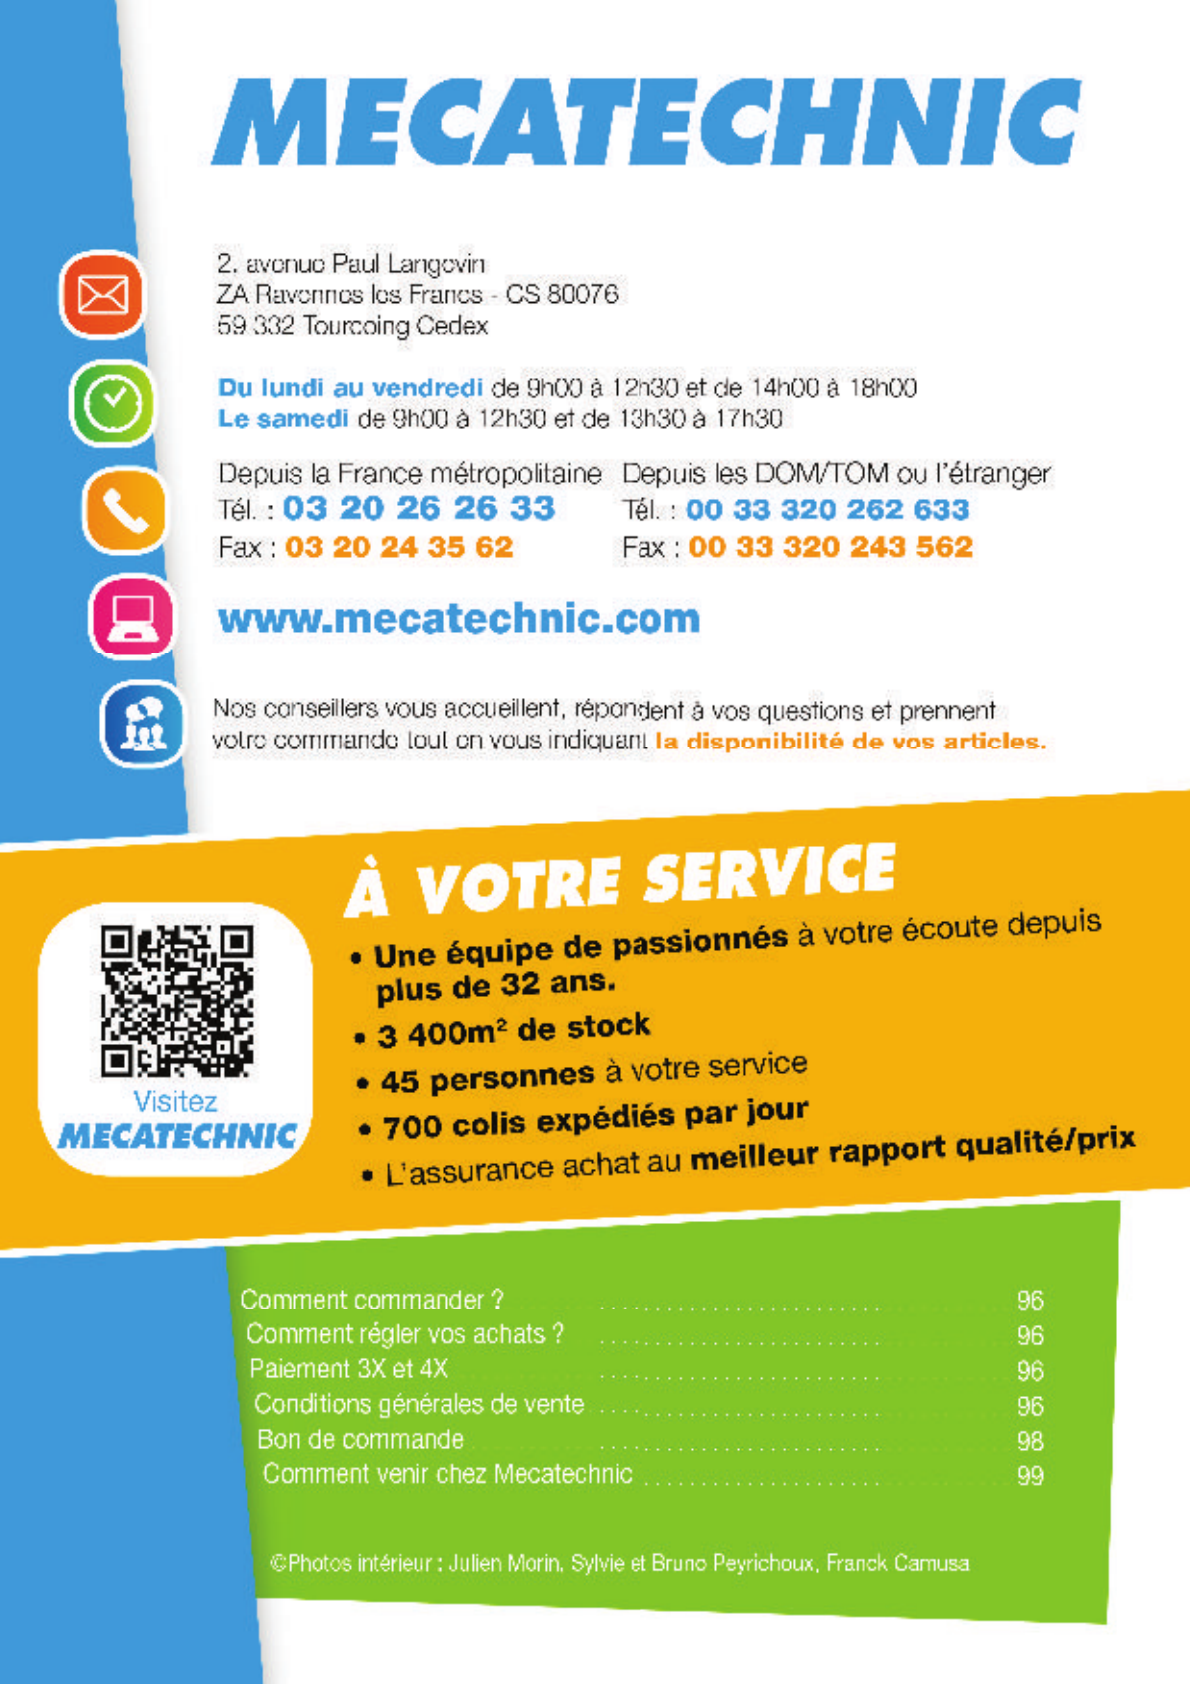 Tlcharger Le Catalogue En Pdf